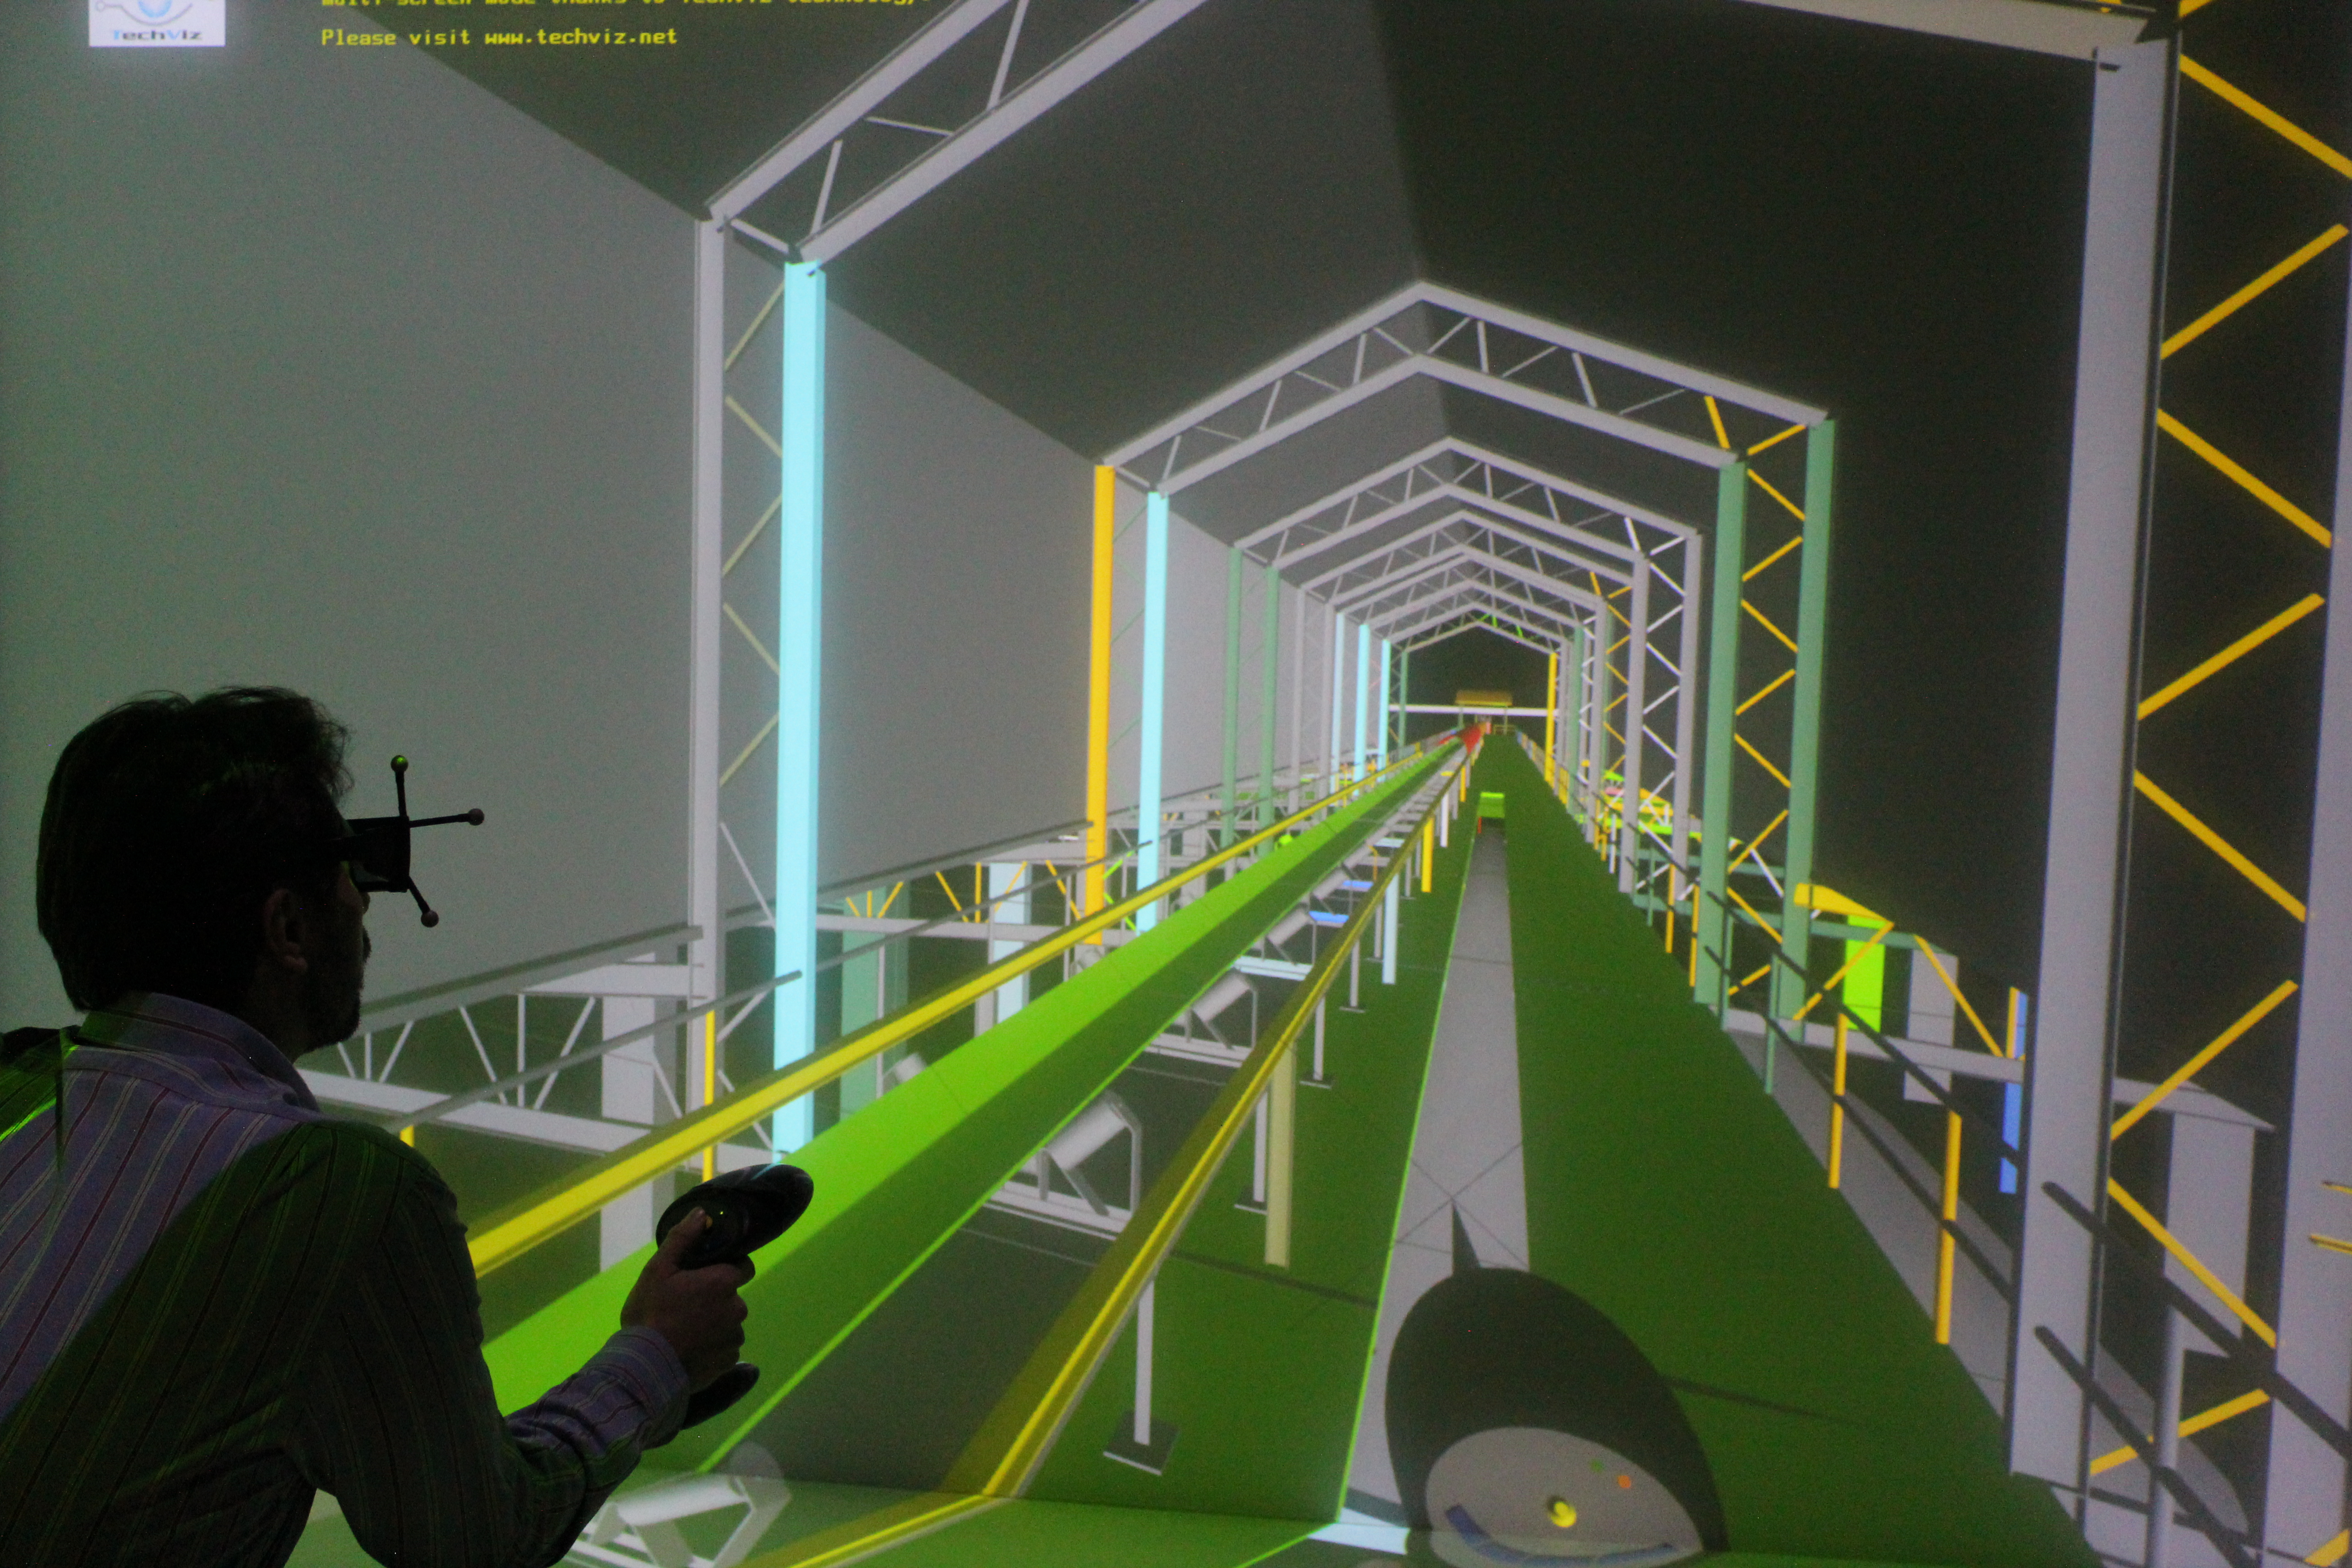 CAD model of a manufacturing plant in Virtual Reality for Industry 4.0